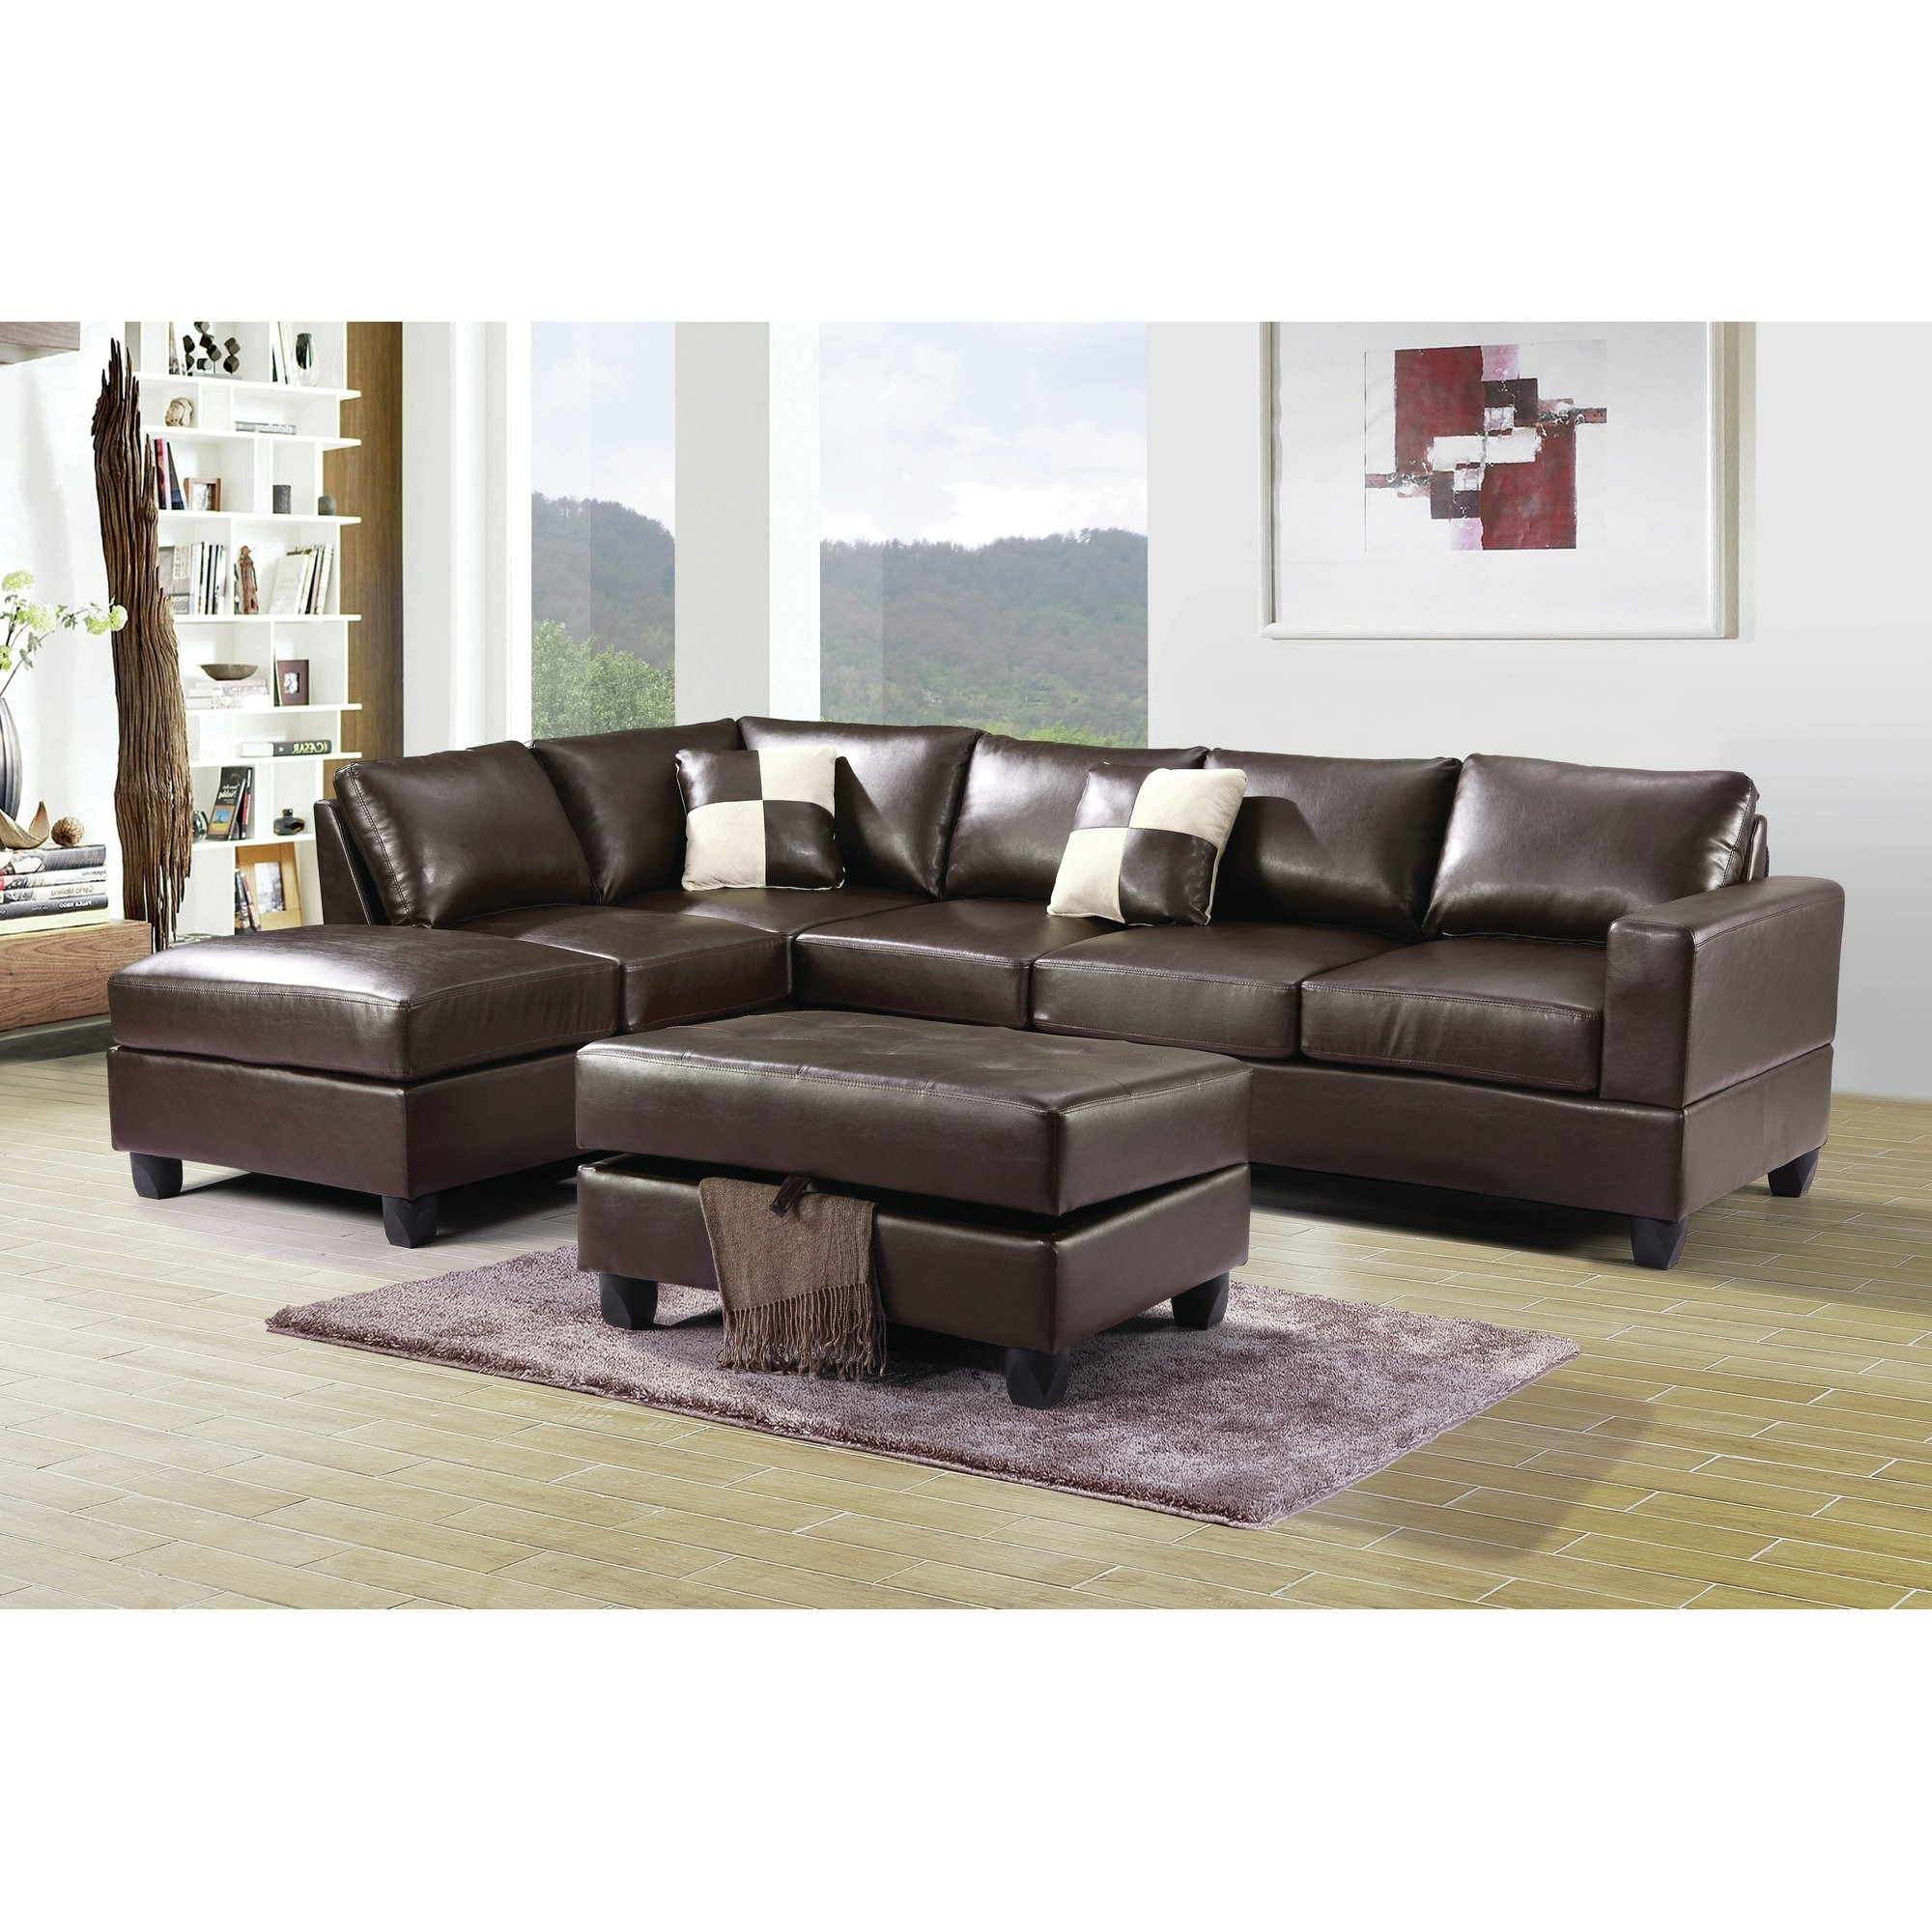 Most Recent Furniture: Sectional Sofas Amazon (View 9 of 20)